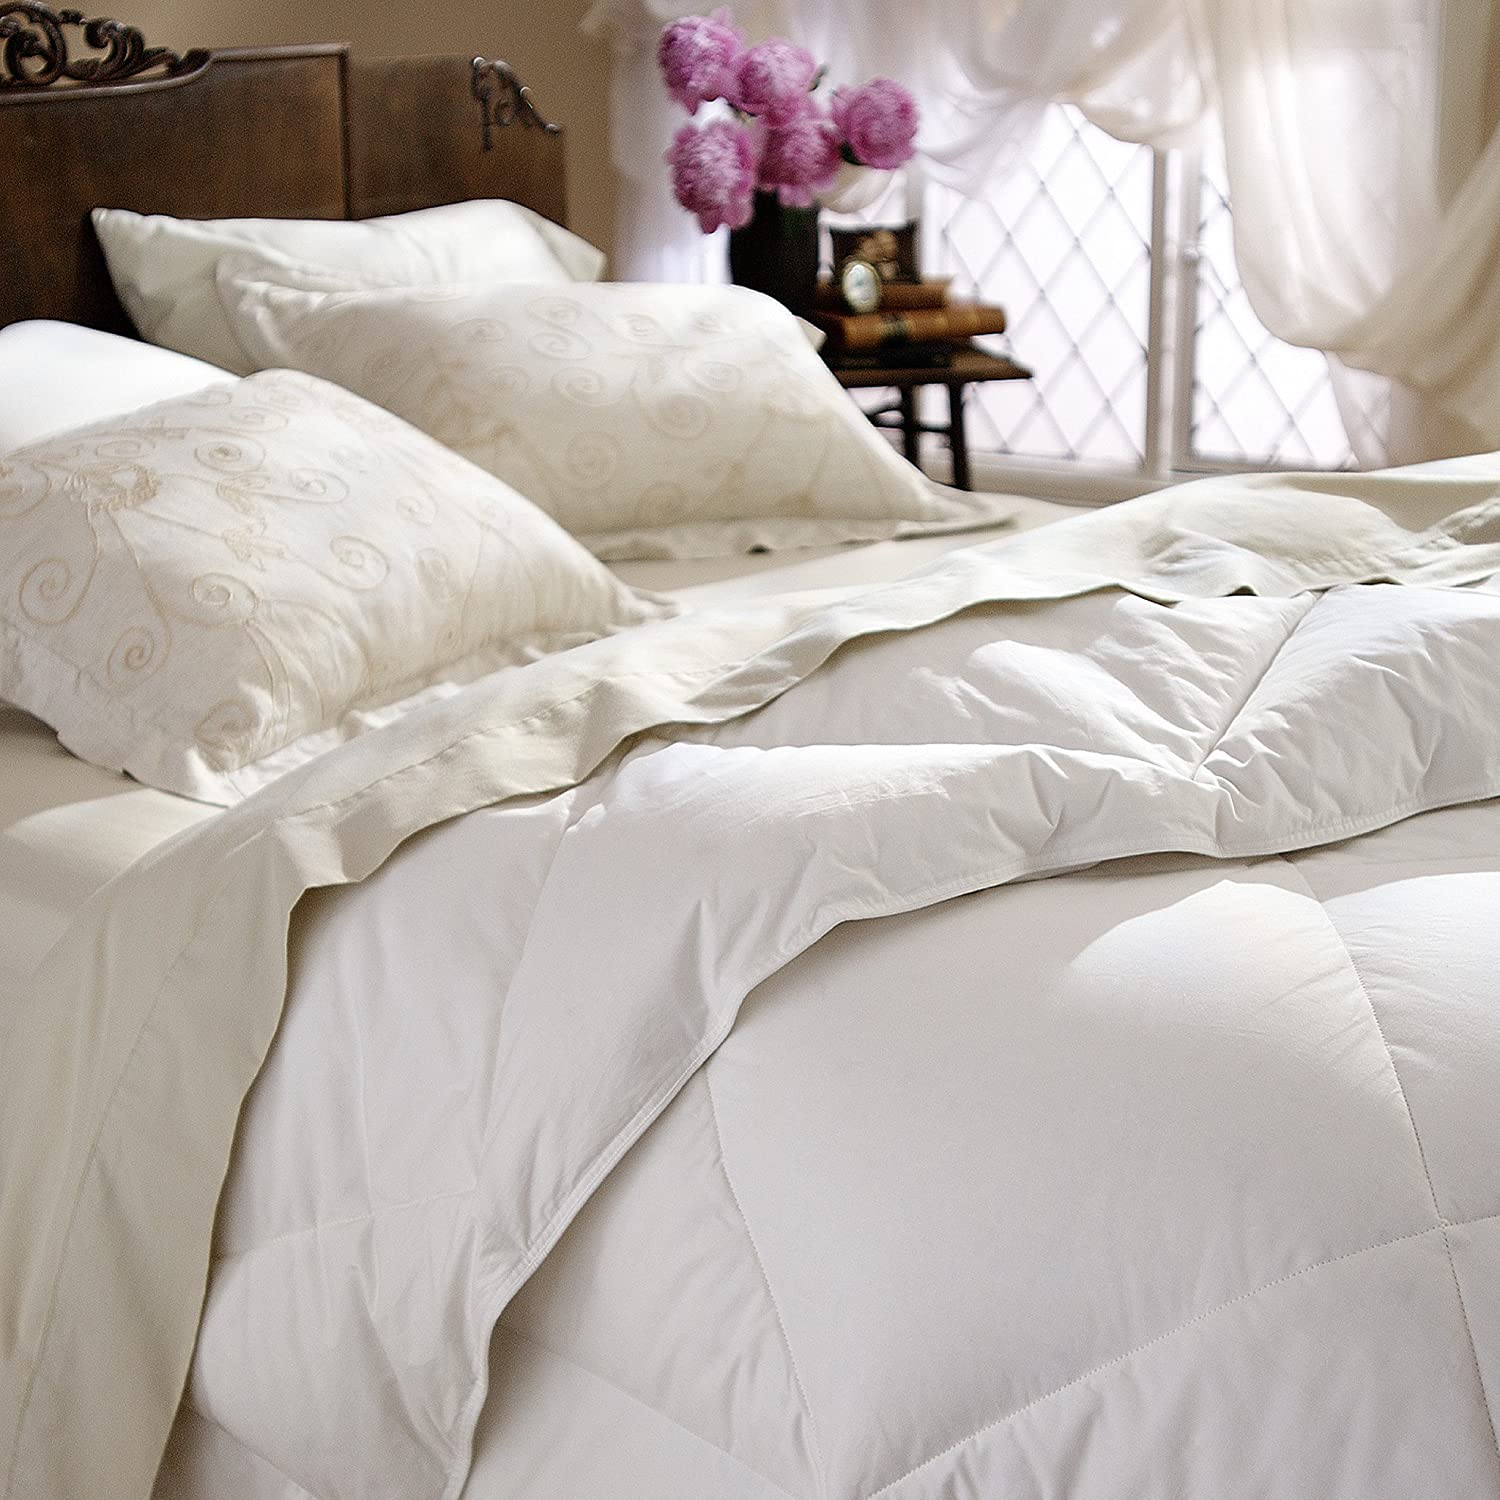 Restful Nights All Natural Down Comforter King 101x86 Inch 29oz